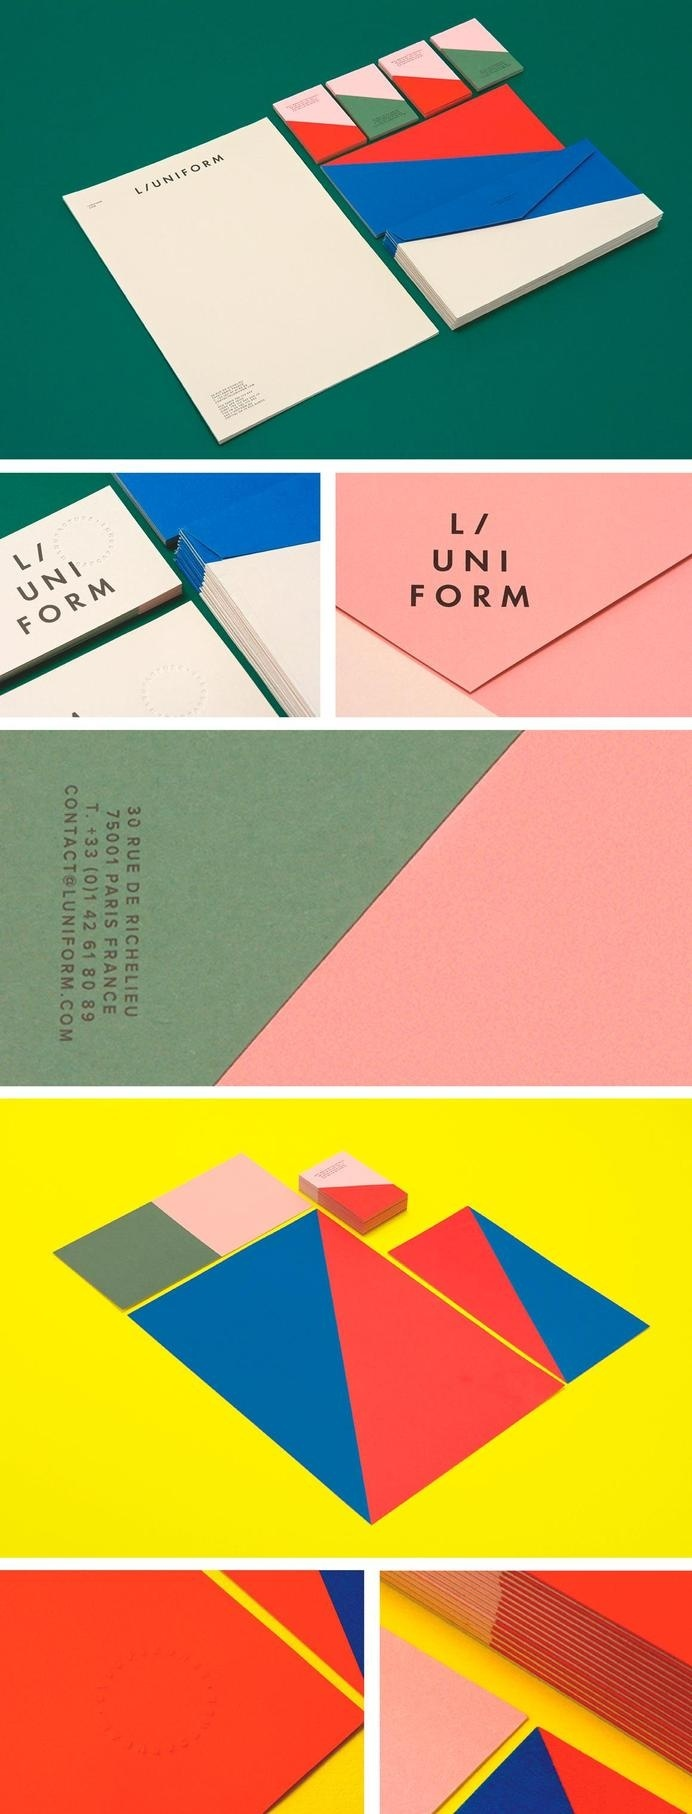 Best Letterhead Abstract Pantones images on Designspiration